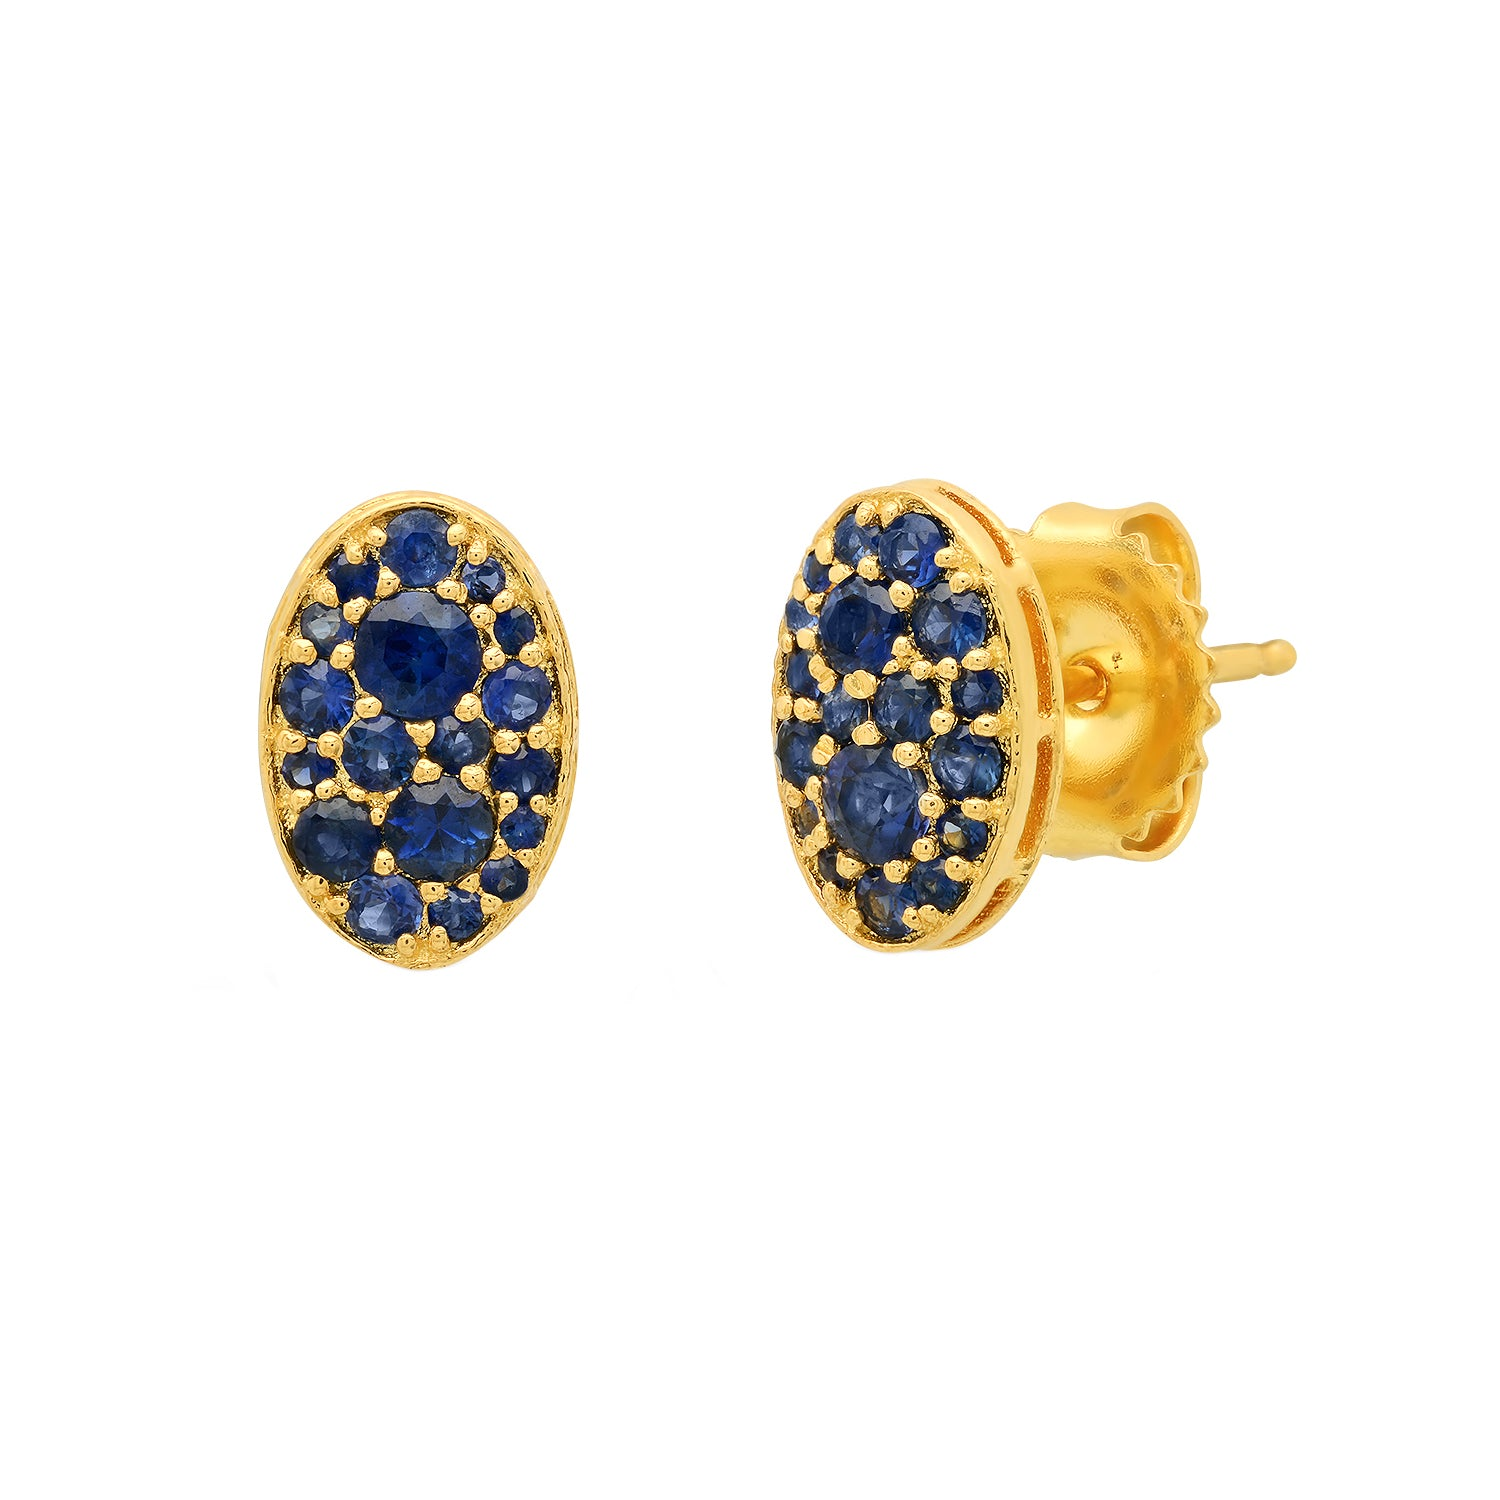 Sapphire Oval Studs by Colette for Broken English Jewelry